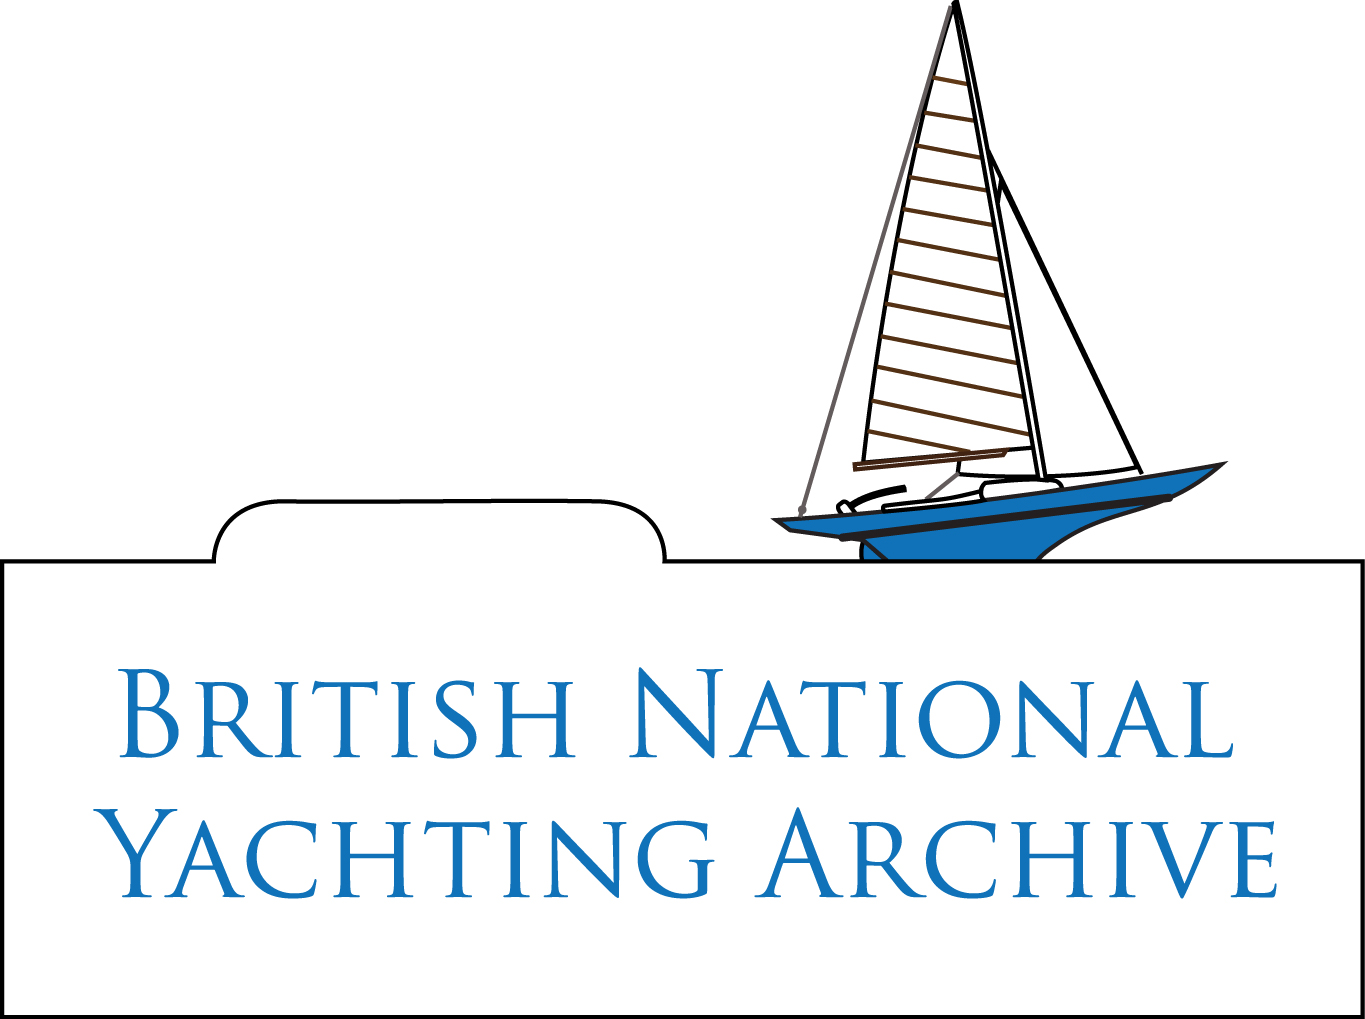 British National Yachting Archive